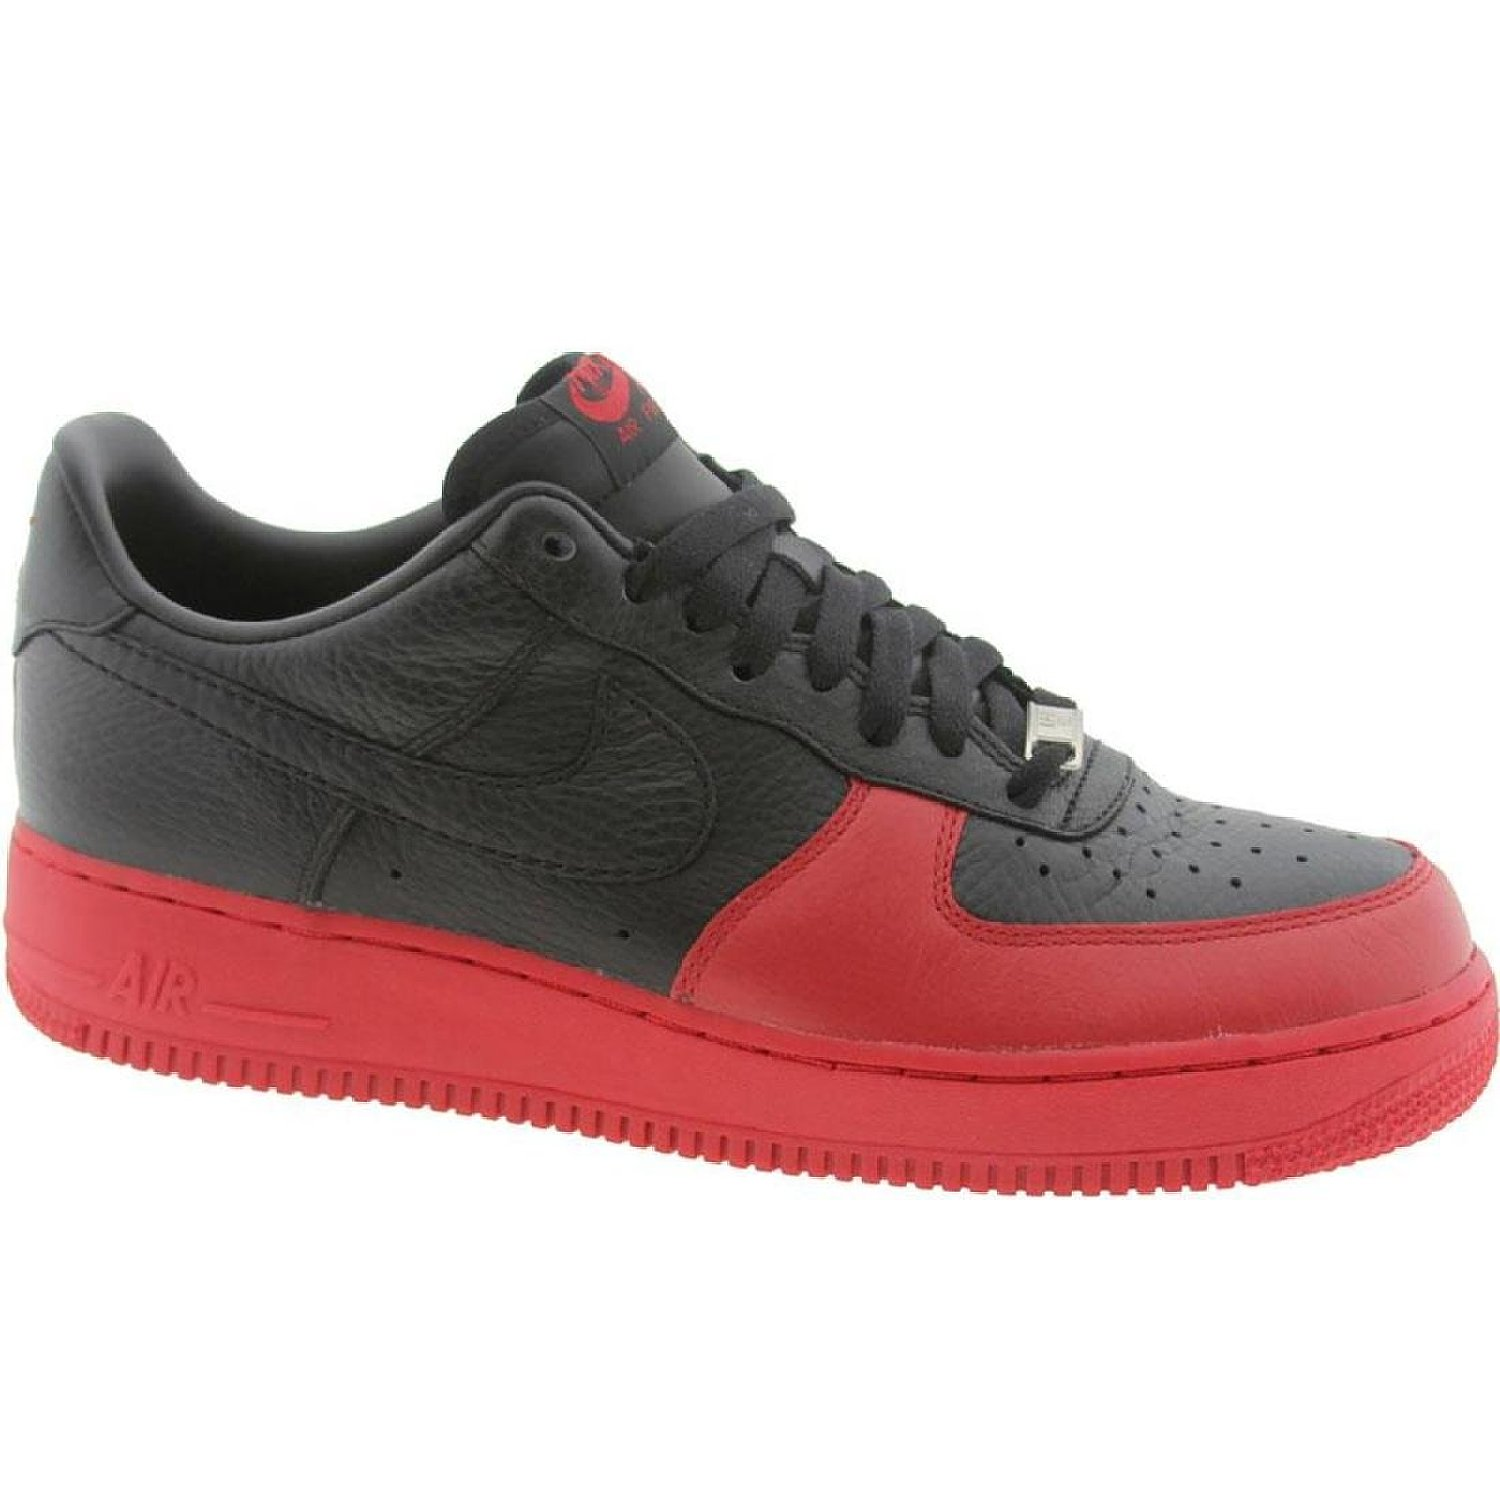 new concept 50b64 1533c Buy Nike Air Force 1 Low Black Varsity Red Men  39 s Basketball Shoes  318274-001 in Cheap Price on m.alibaba.com